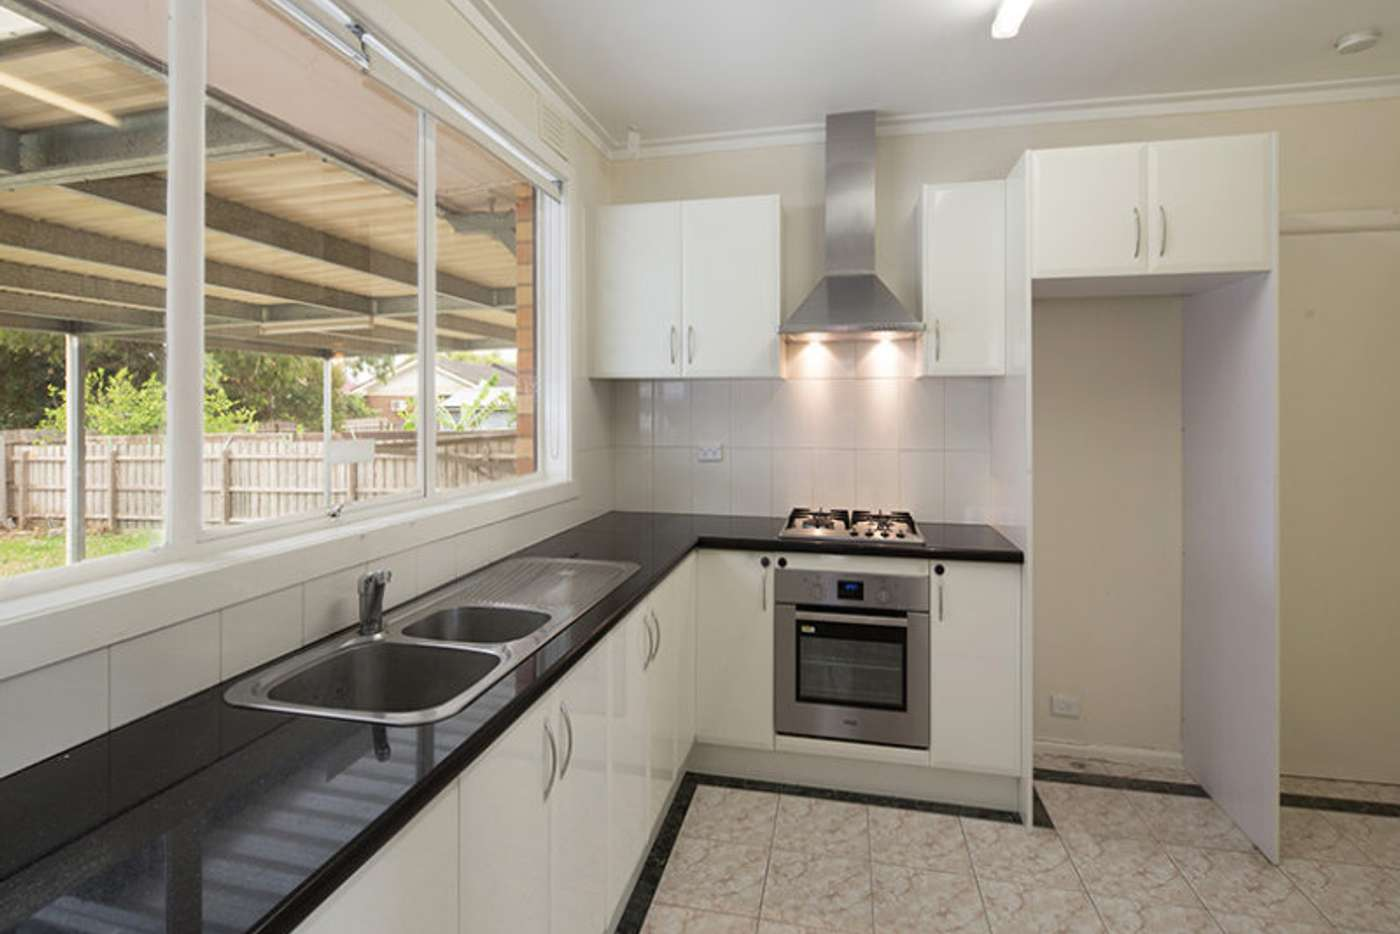 Seventh view of Homely house listing, 34 Donald Street, Springvale VIC 3171